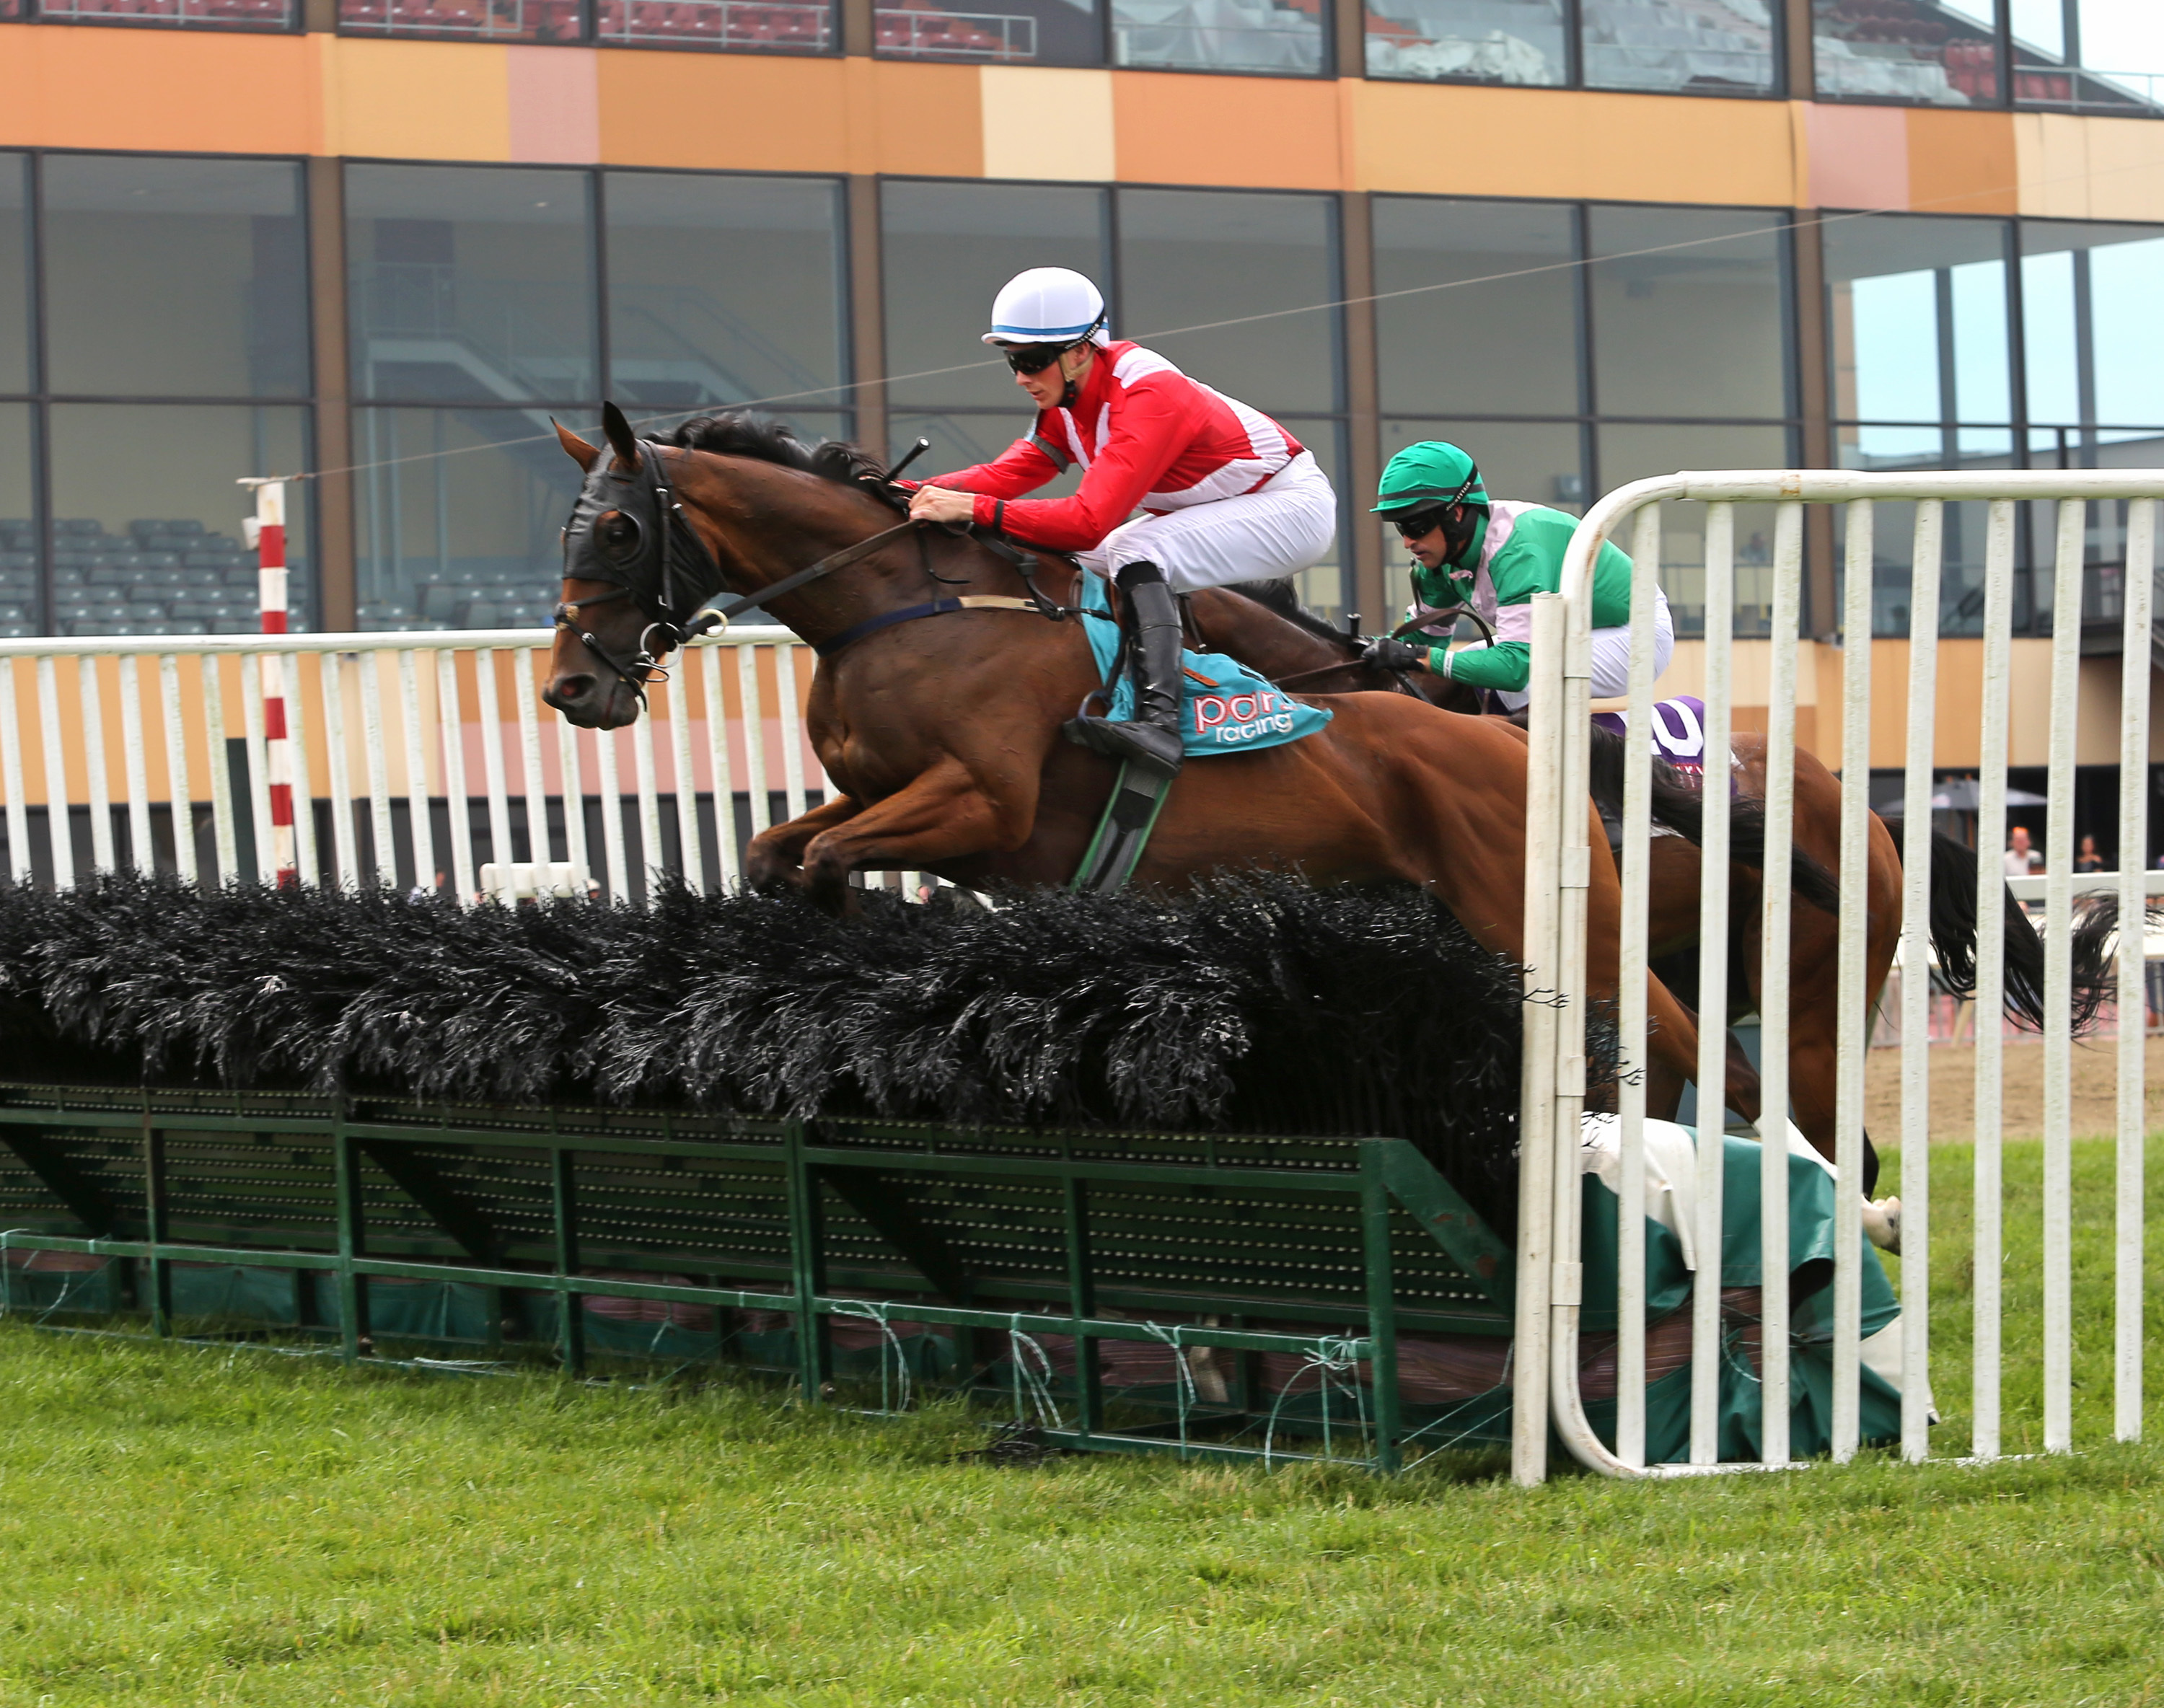 Jump rider Willie McCarthy injured in Tuesday spill at ...